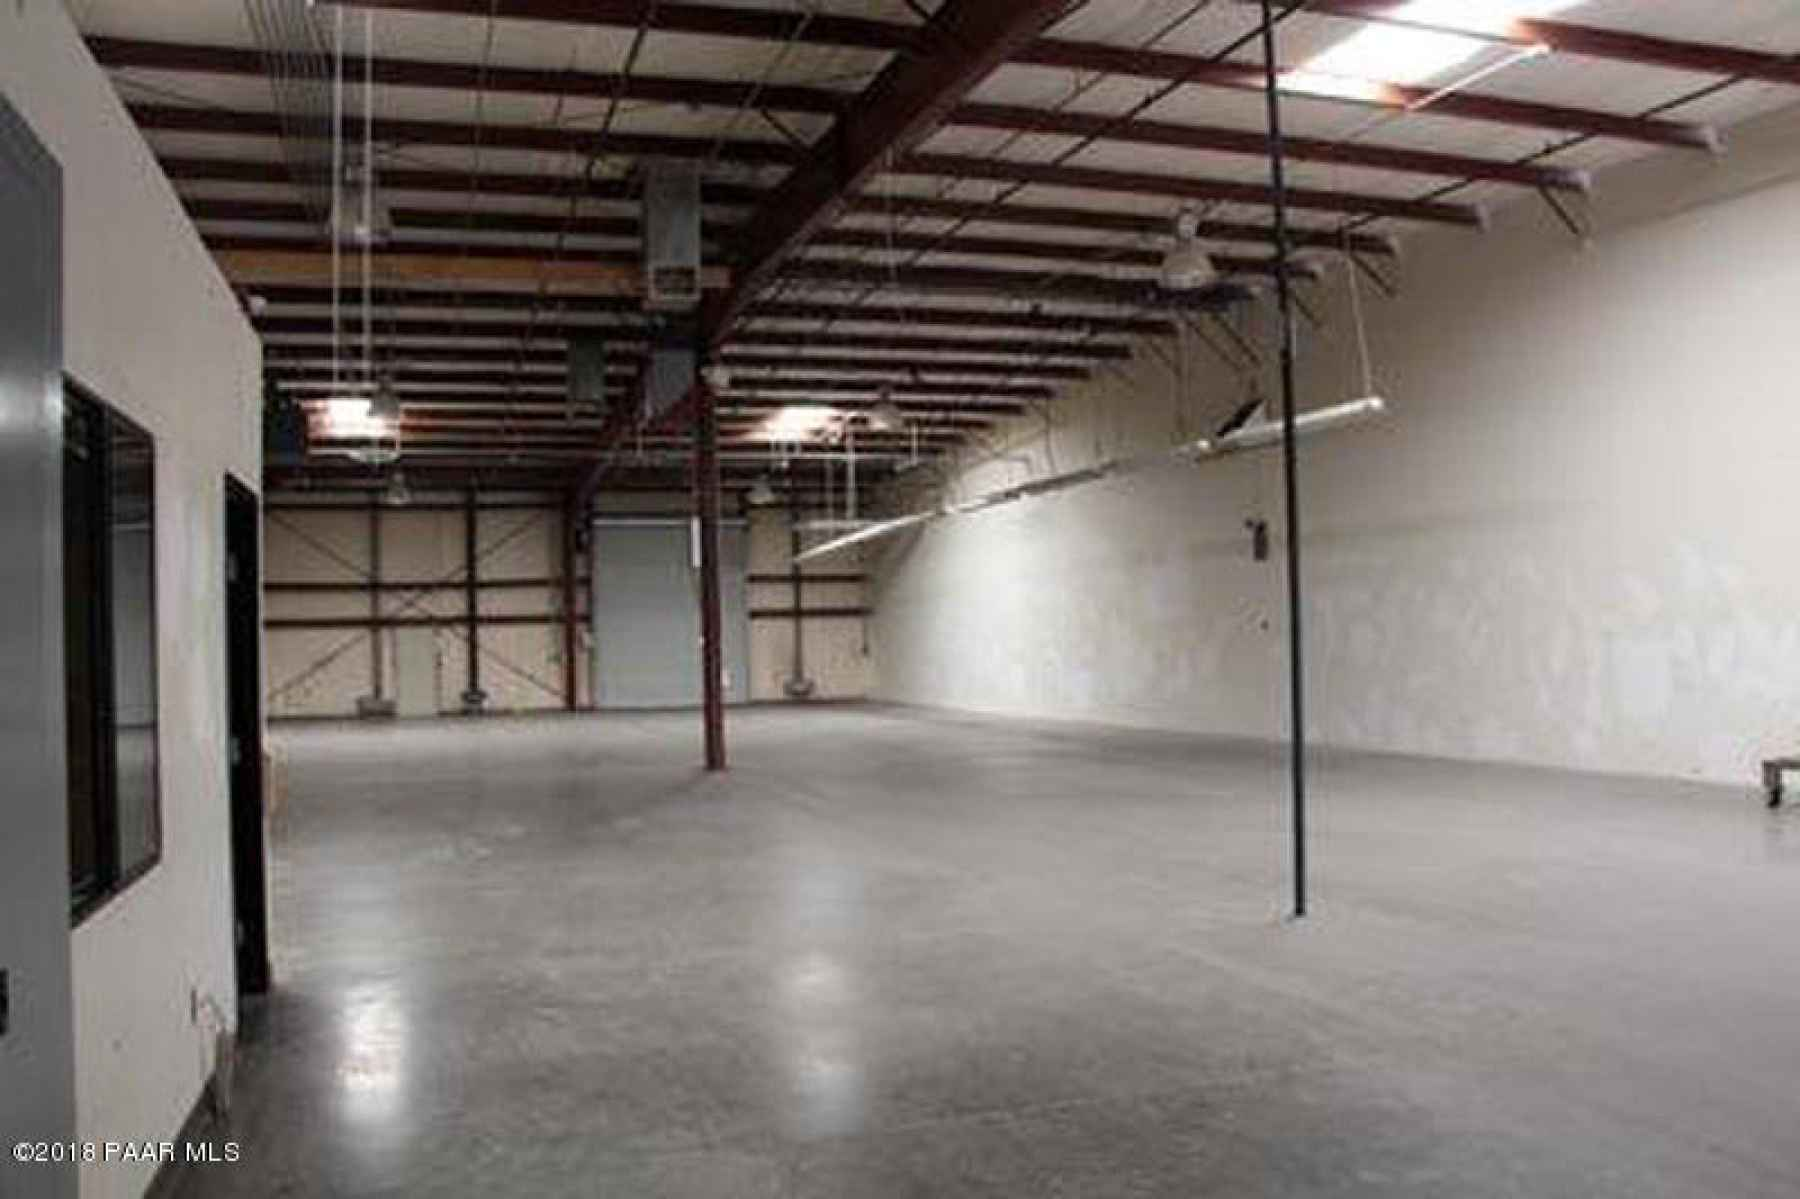 Interior view past office in warehouse s